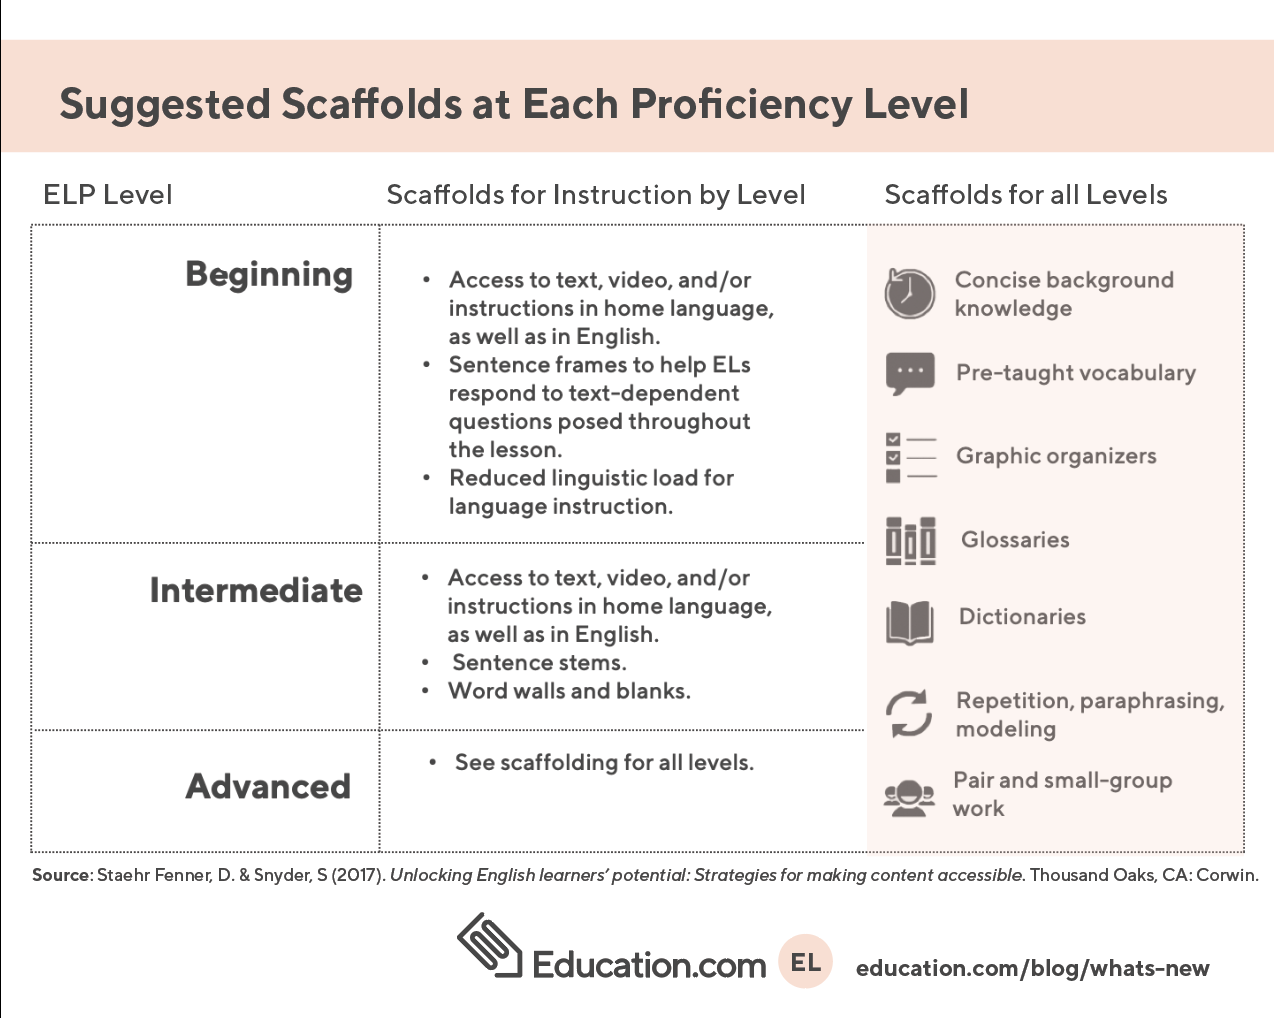 Suggested Scaffolds at Each Proficiency Level